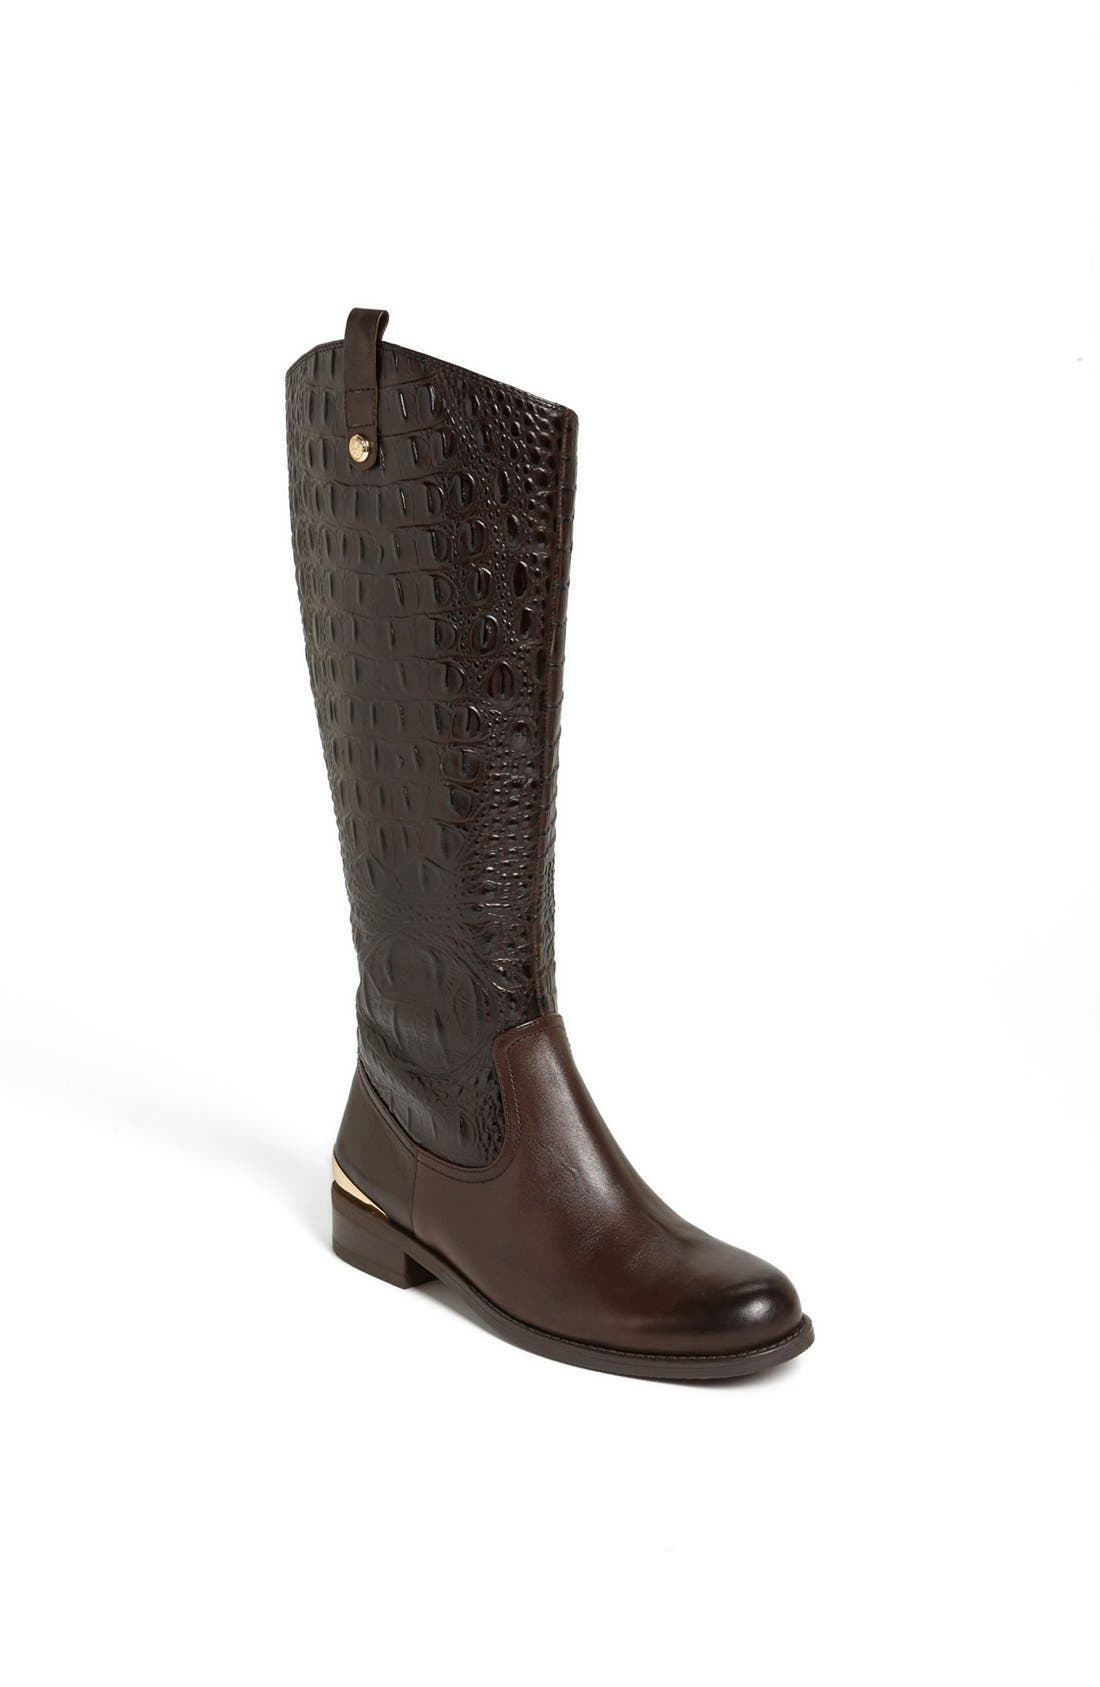 Alternate Image 1 Selected - Vince Camuto 'Kamino' Boot